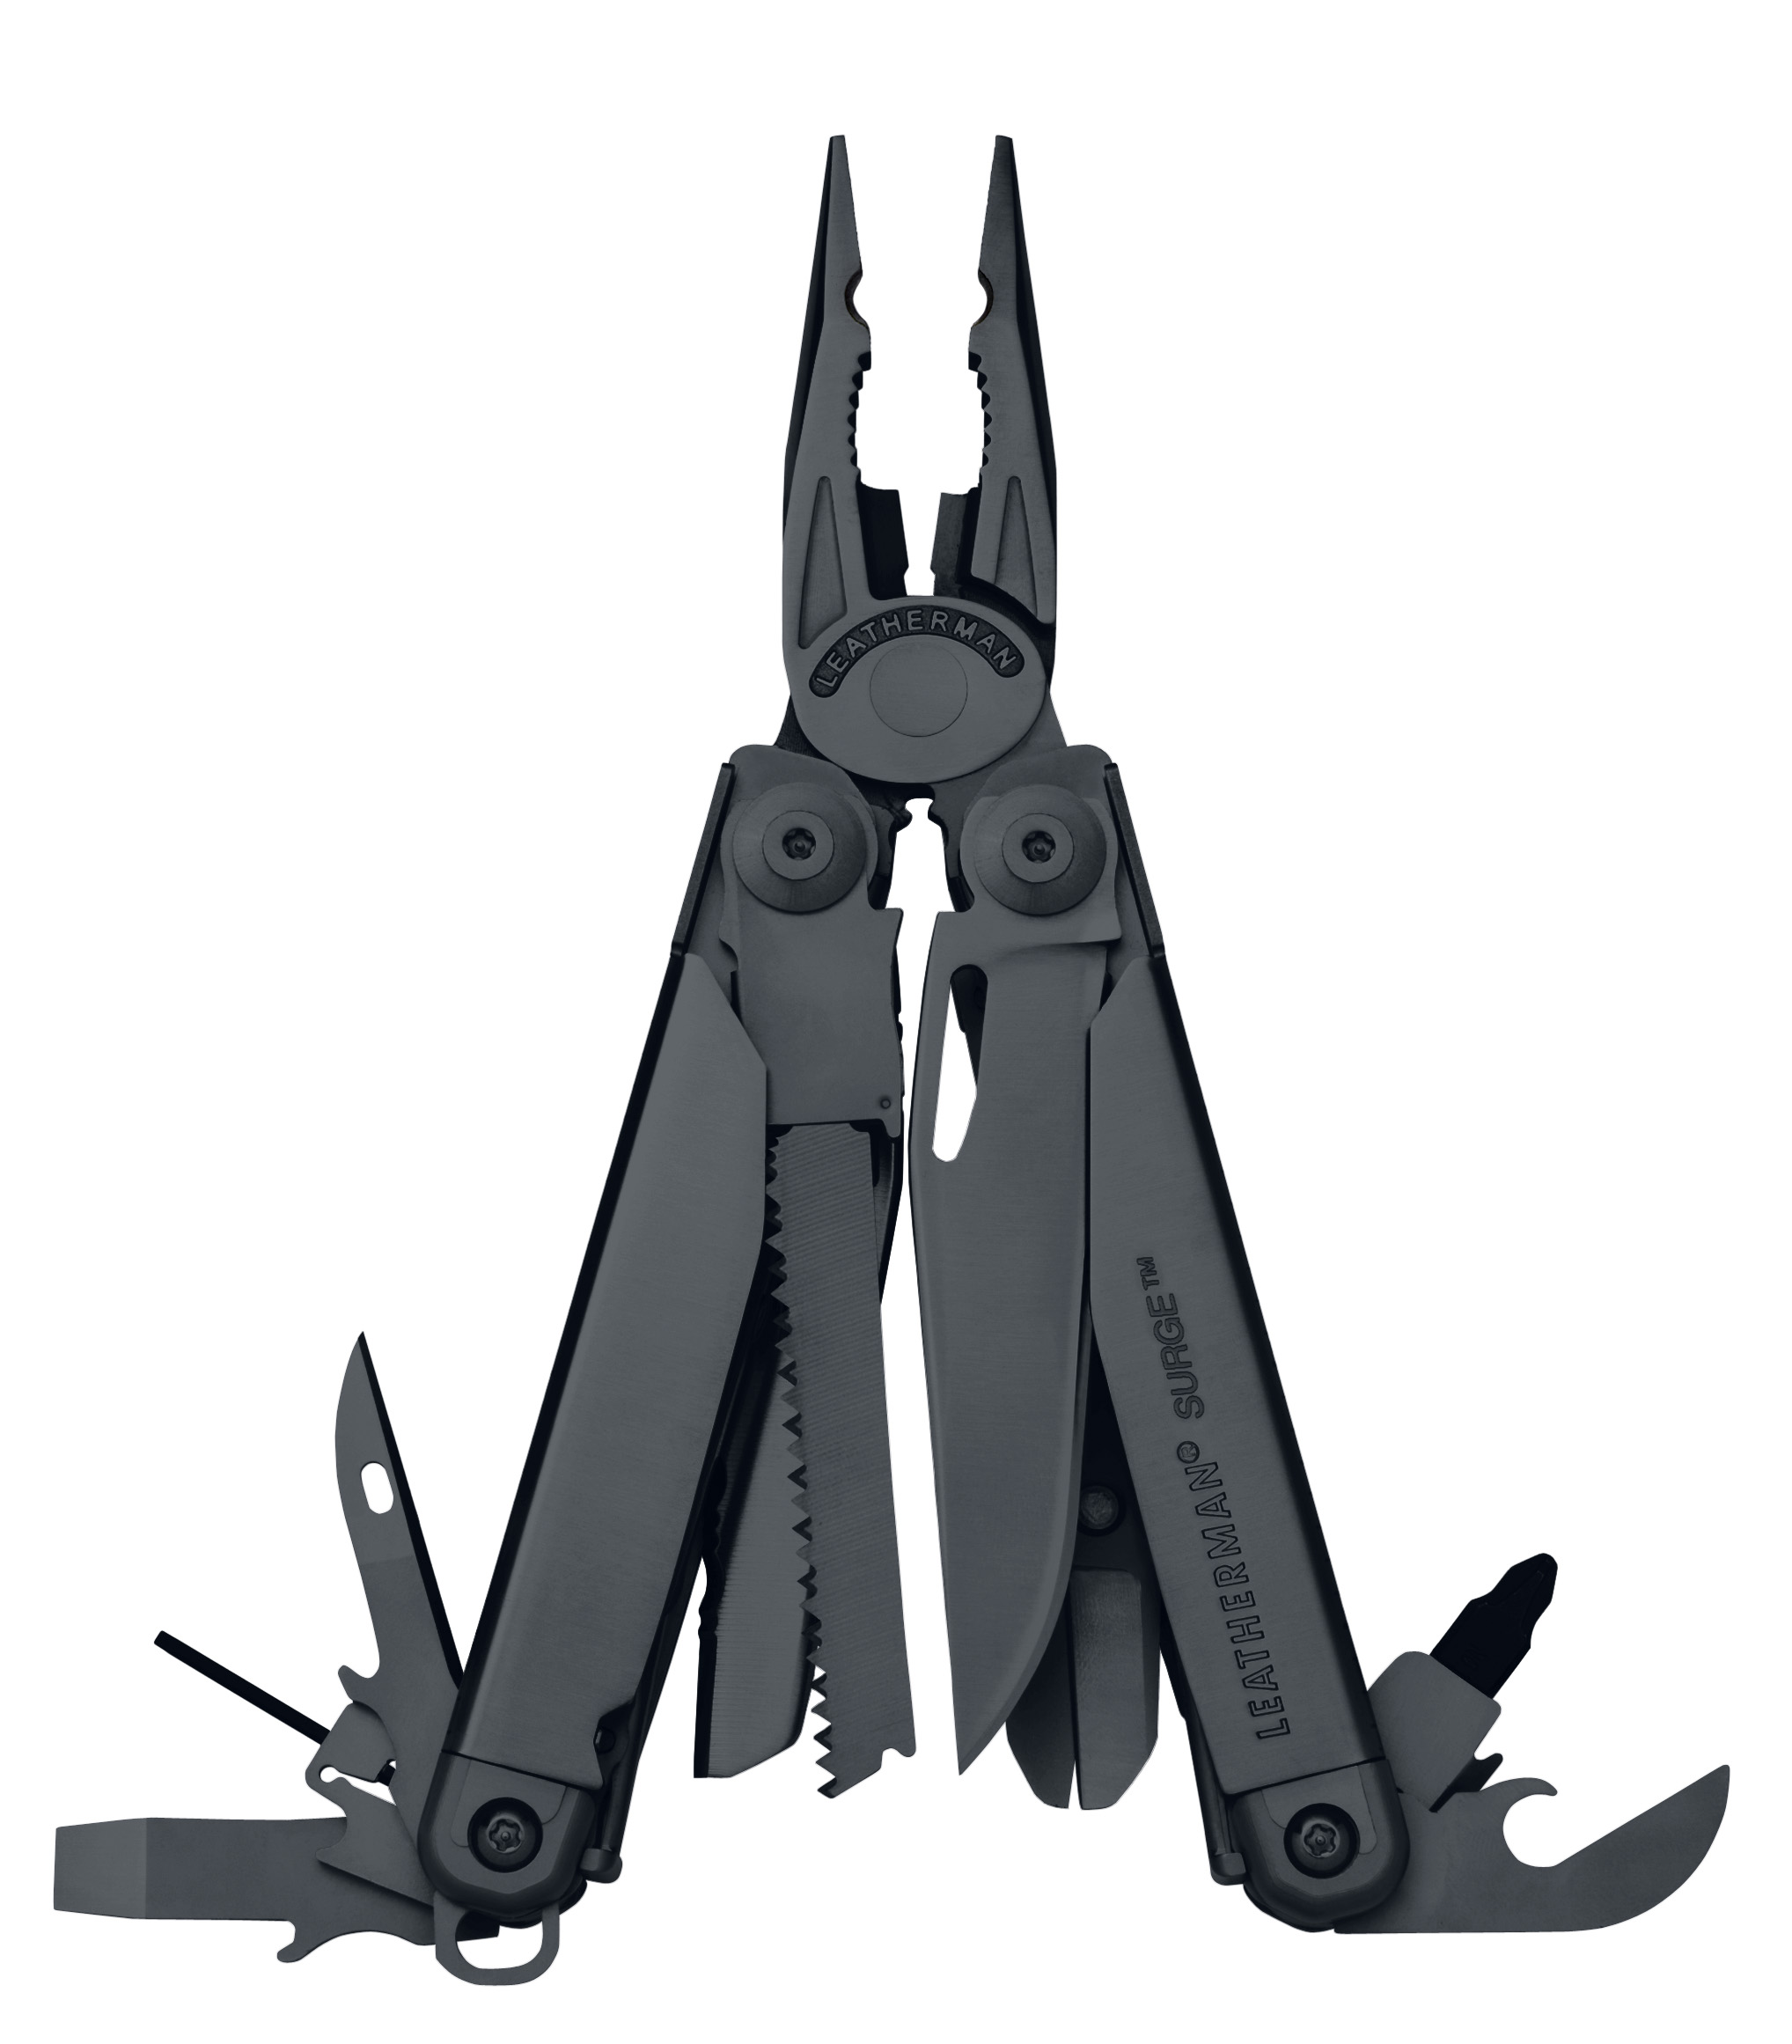 Leatherman Surge Black w/ Cap Crimper - Premium Sheath